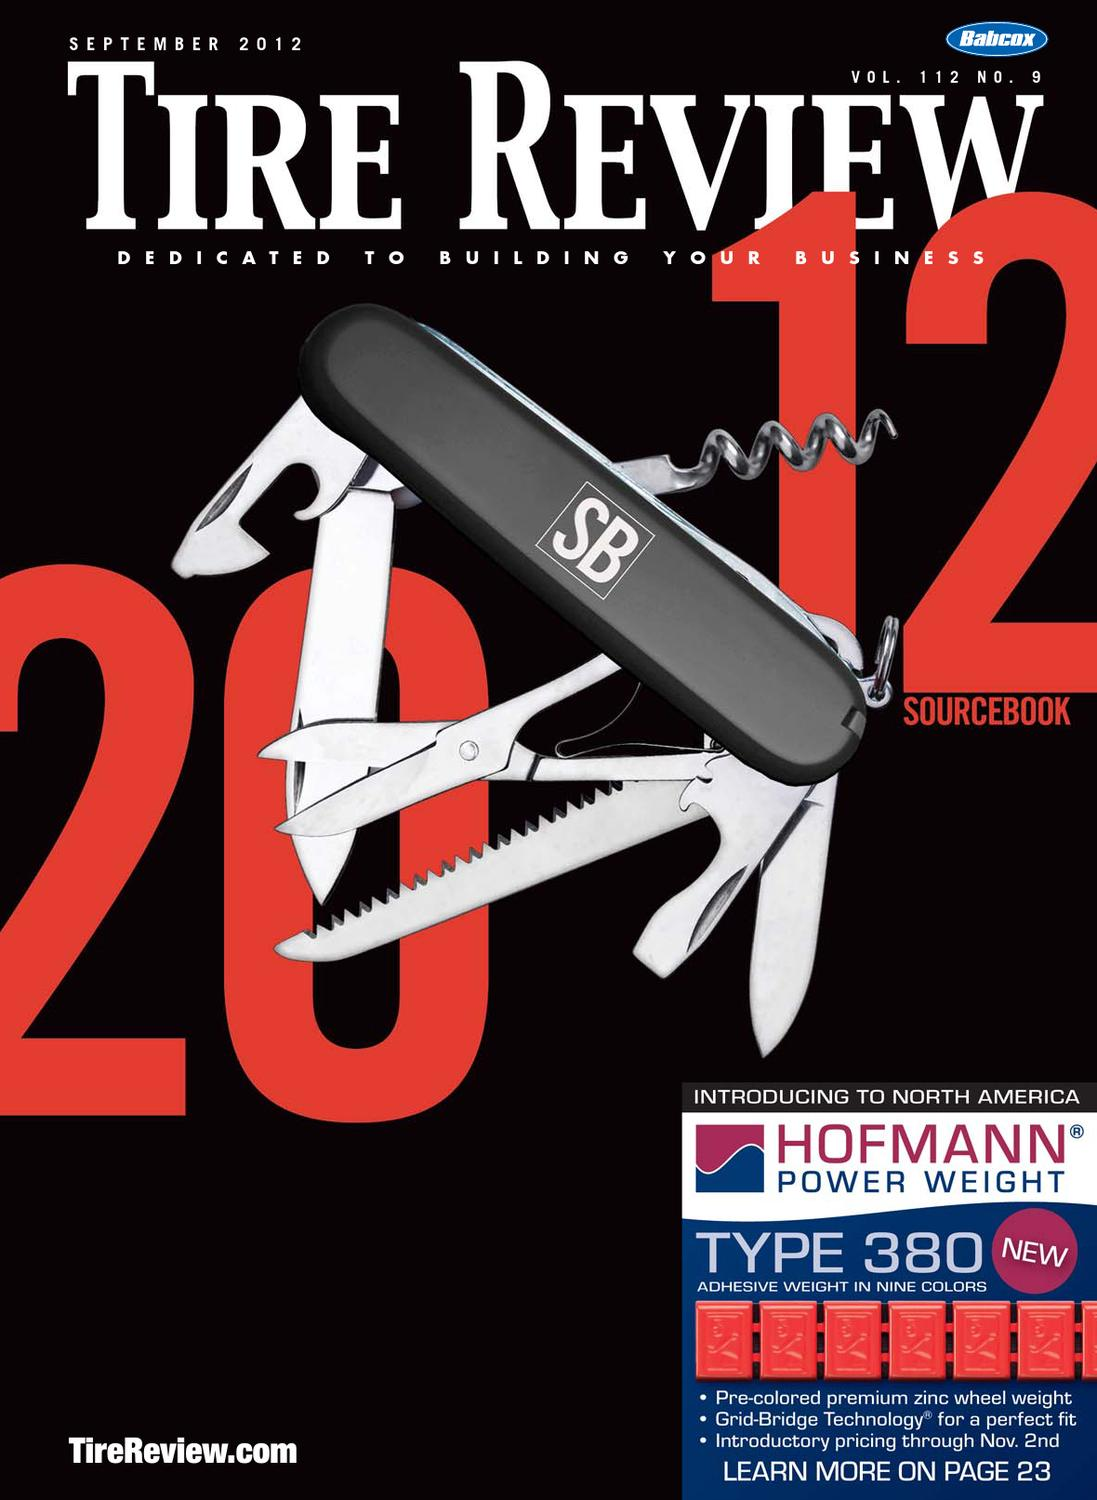 Tire Review September 2012 By Babcox Media Issuu Components Systems Exhaust Gas Recirculation System Autozonecom